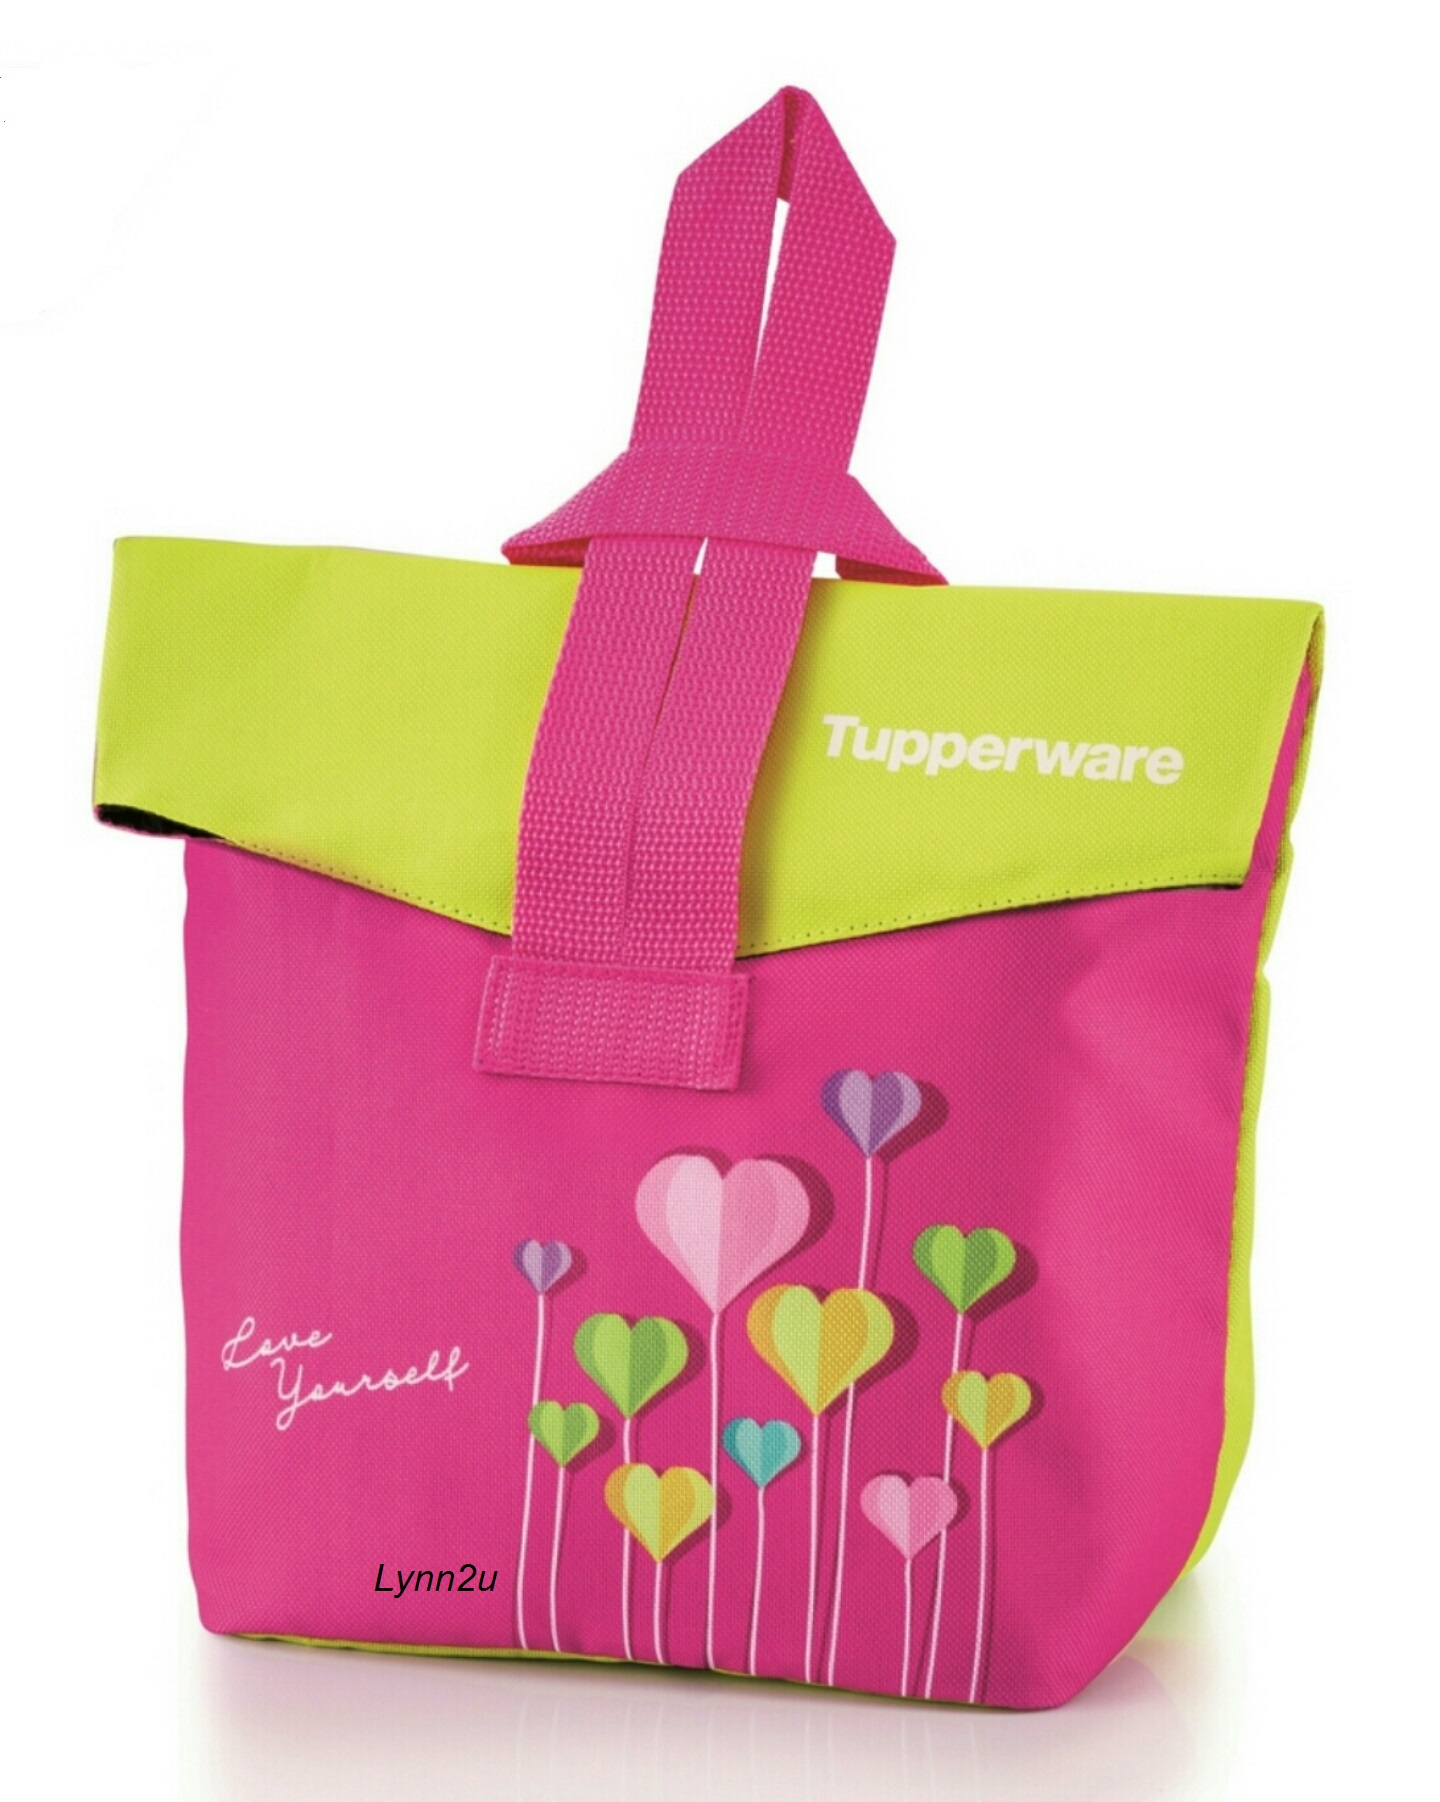 Tupperware Trendy Printed Pouch (1)